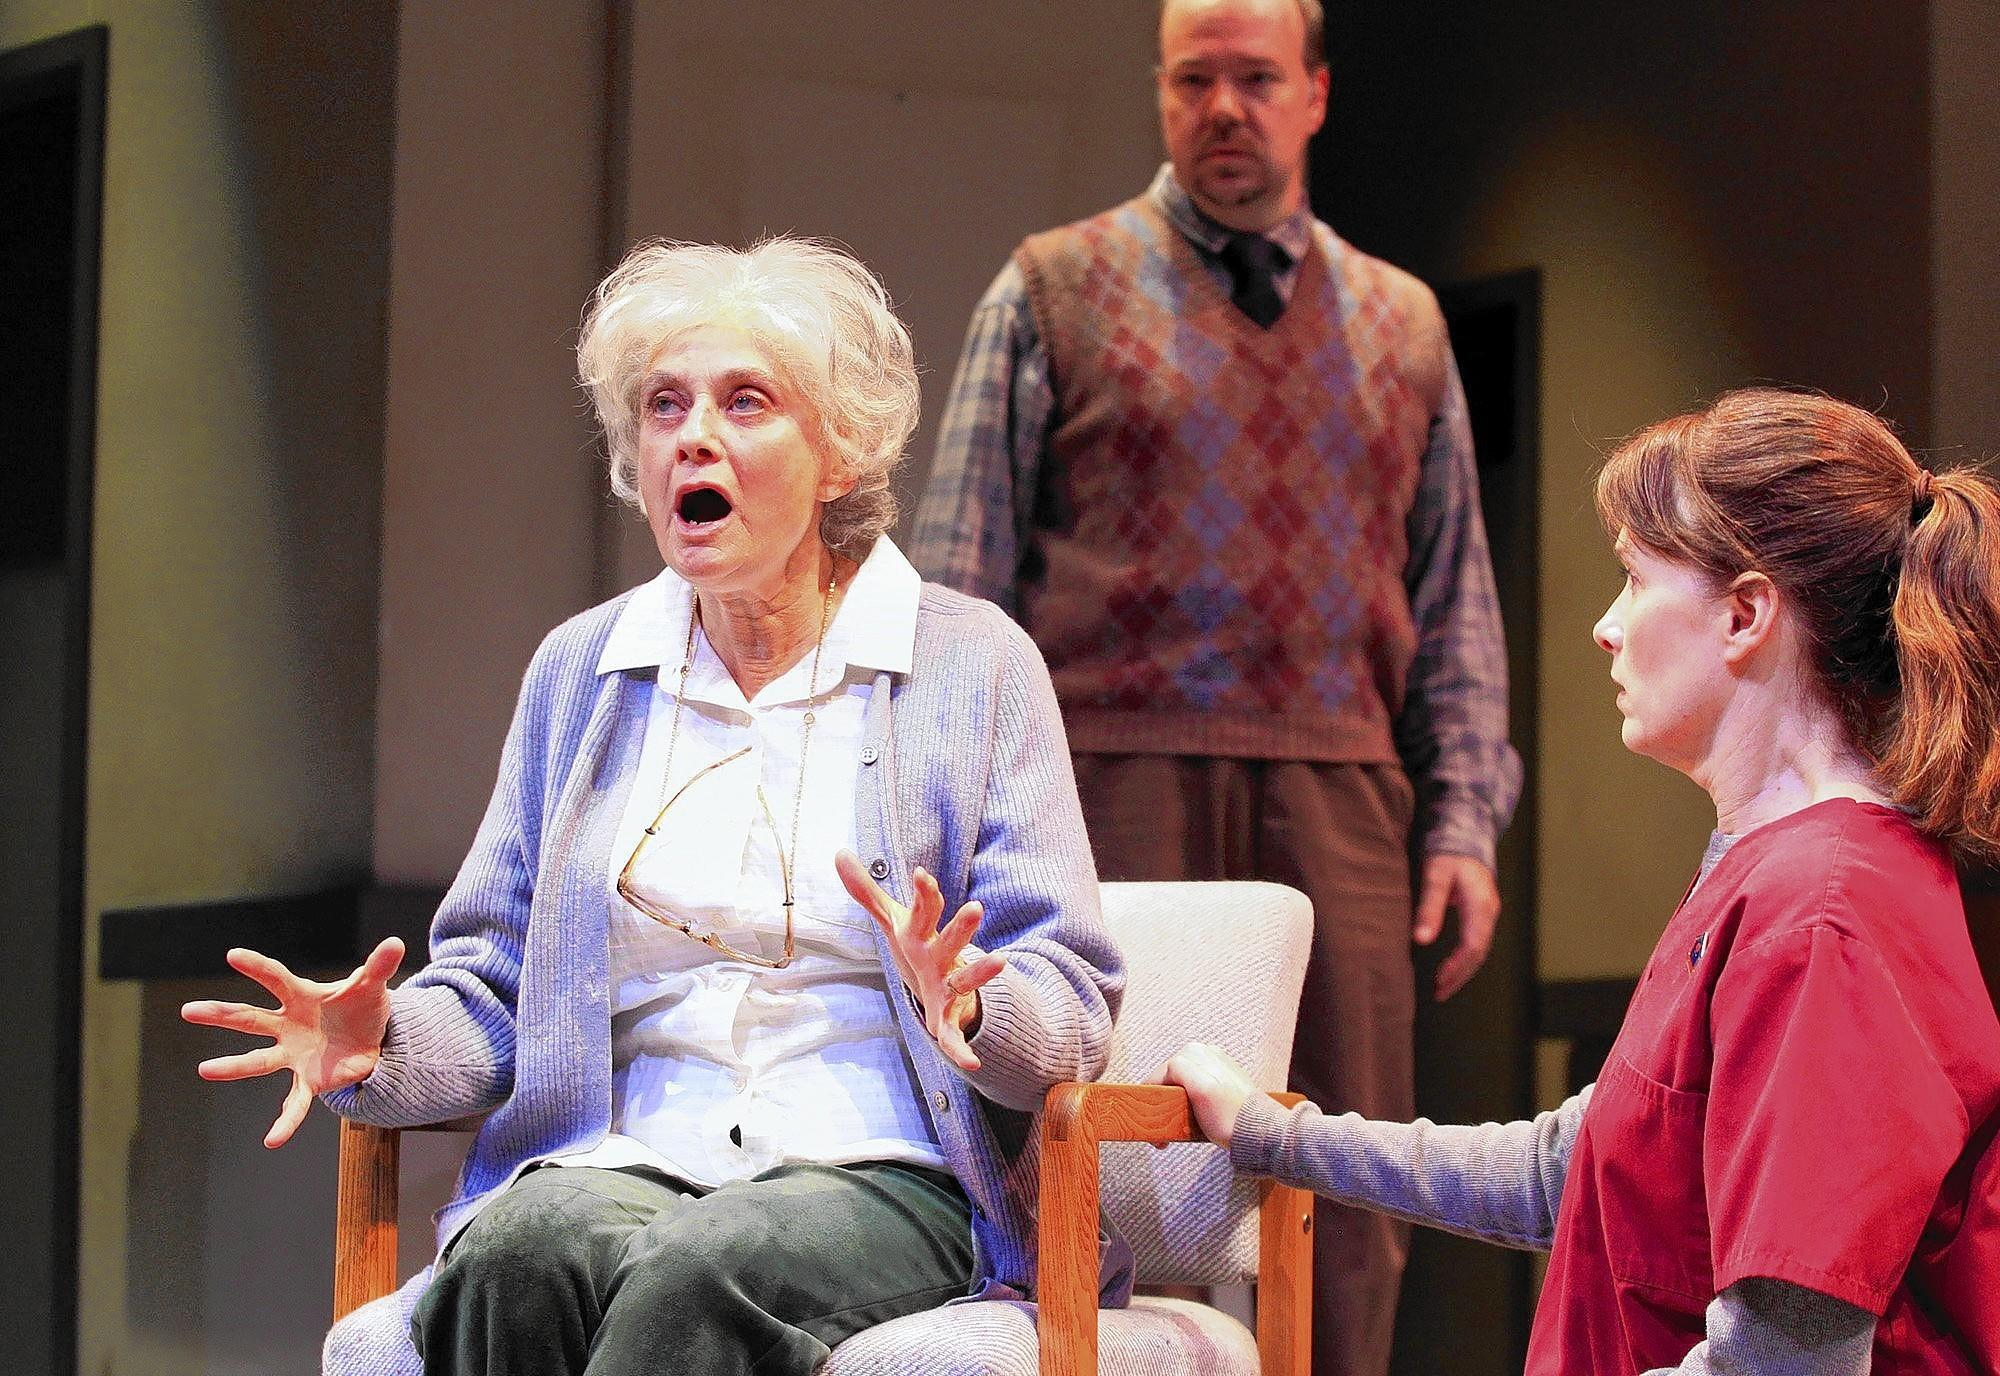 """Actors, counterclockwise from left, Lynn Milgrim, Sue Cremin and Rob Nagle during rehearsals for """"Rest"""" at South Coast Repertory on Wednesday."""